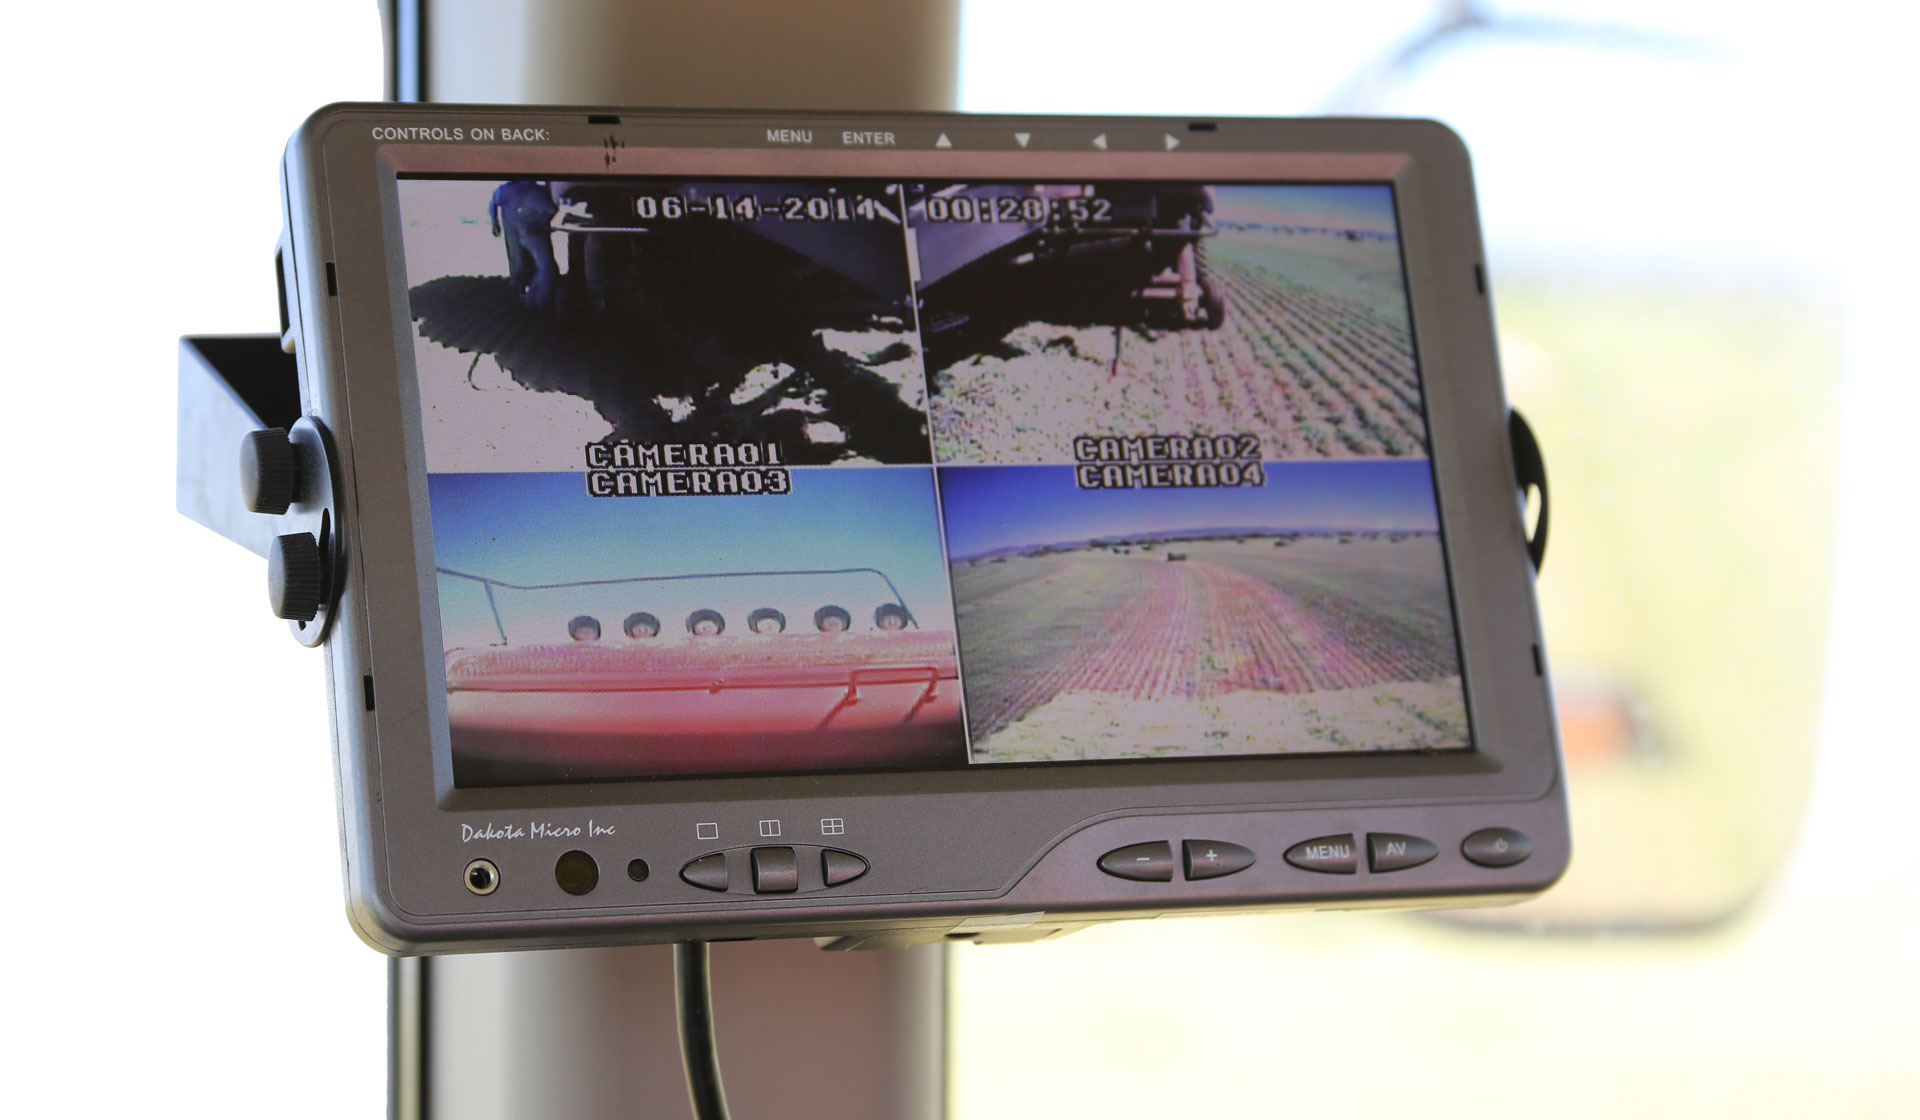 The Dakota Micro AgCam system shows many views around your equipment.